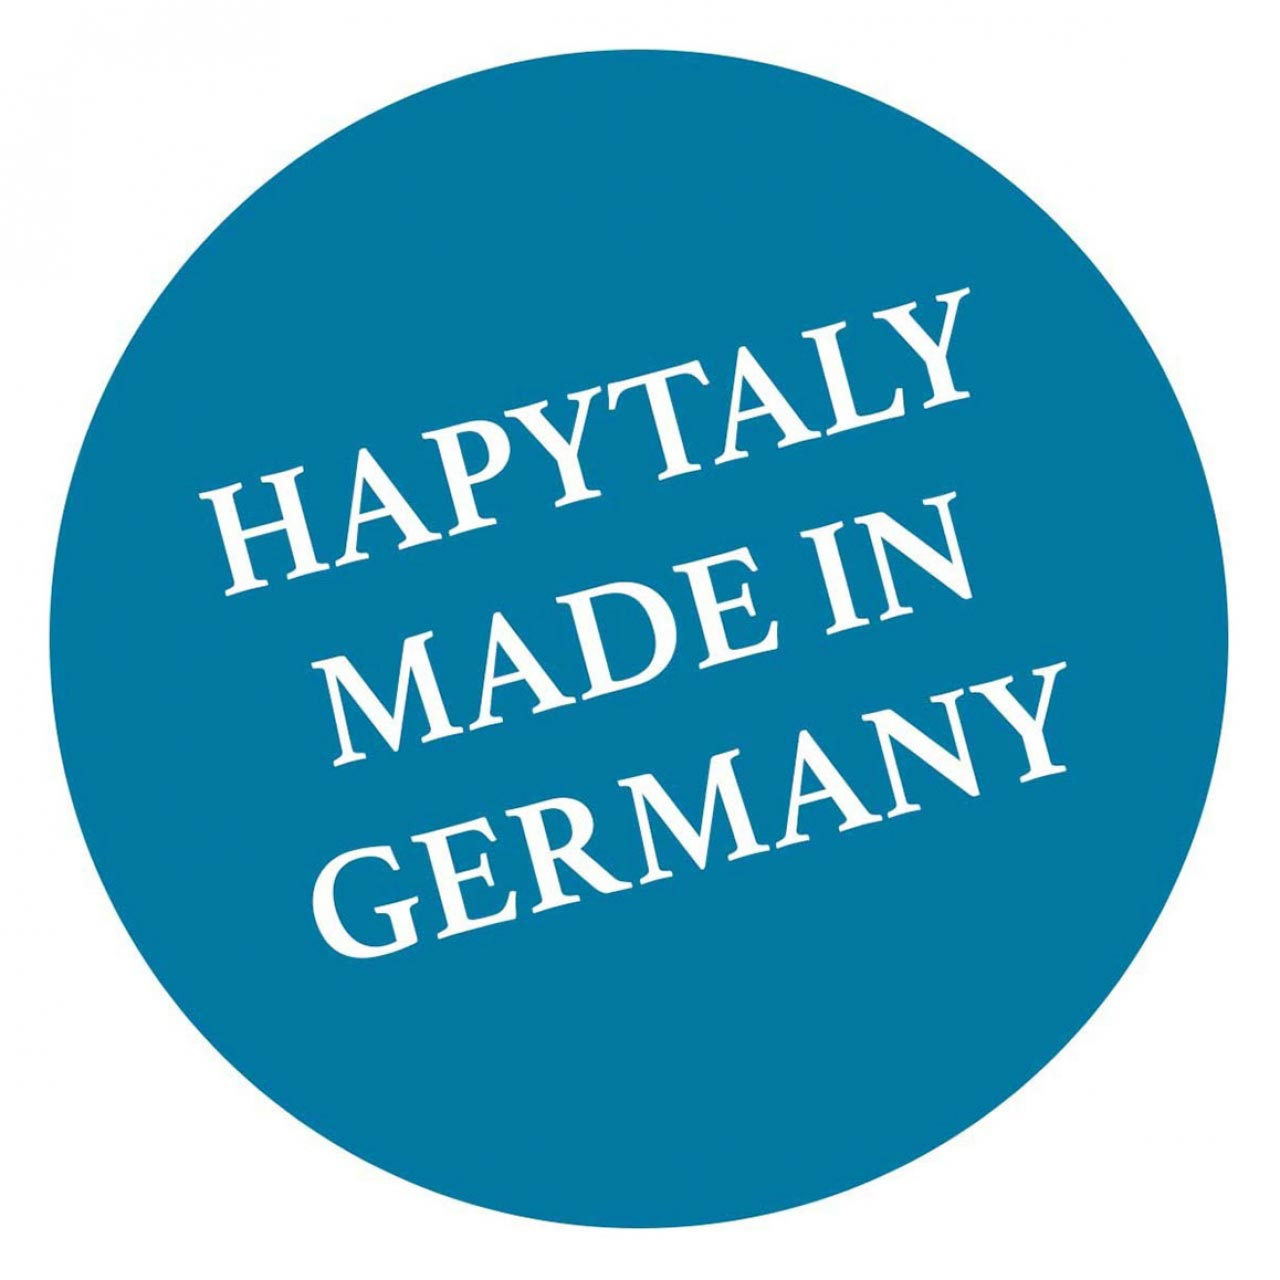 Hapytaly – Made in Germany